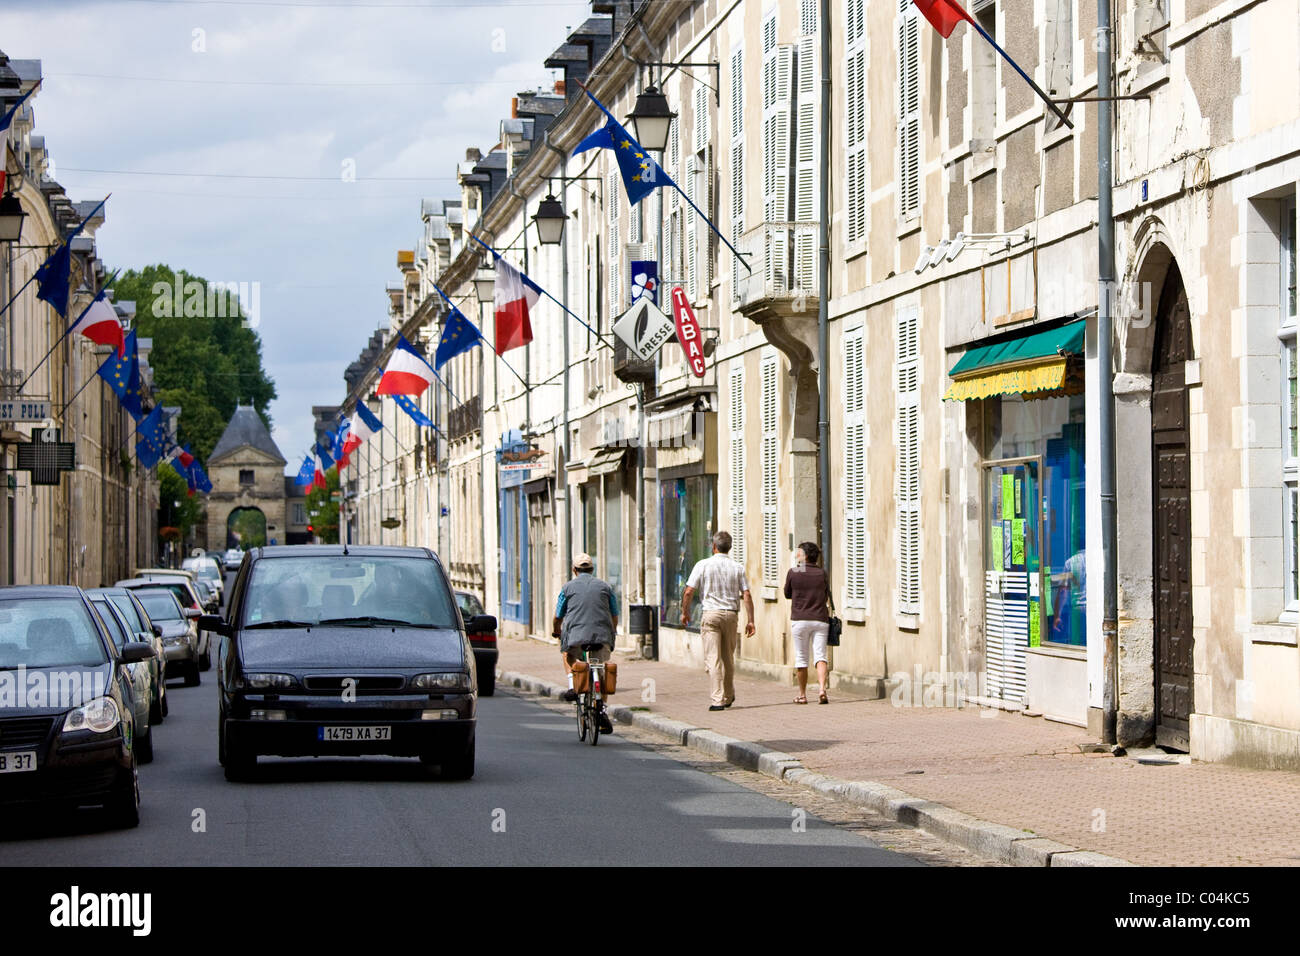 European Community and French flags in town of Richelieu in Loire Valley, Indre et Loire, France - Stock Image